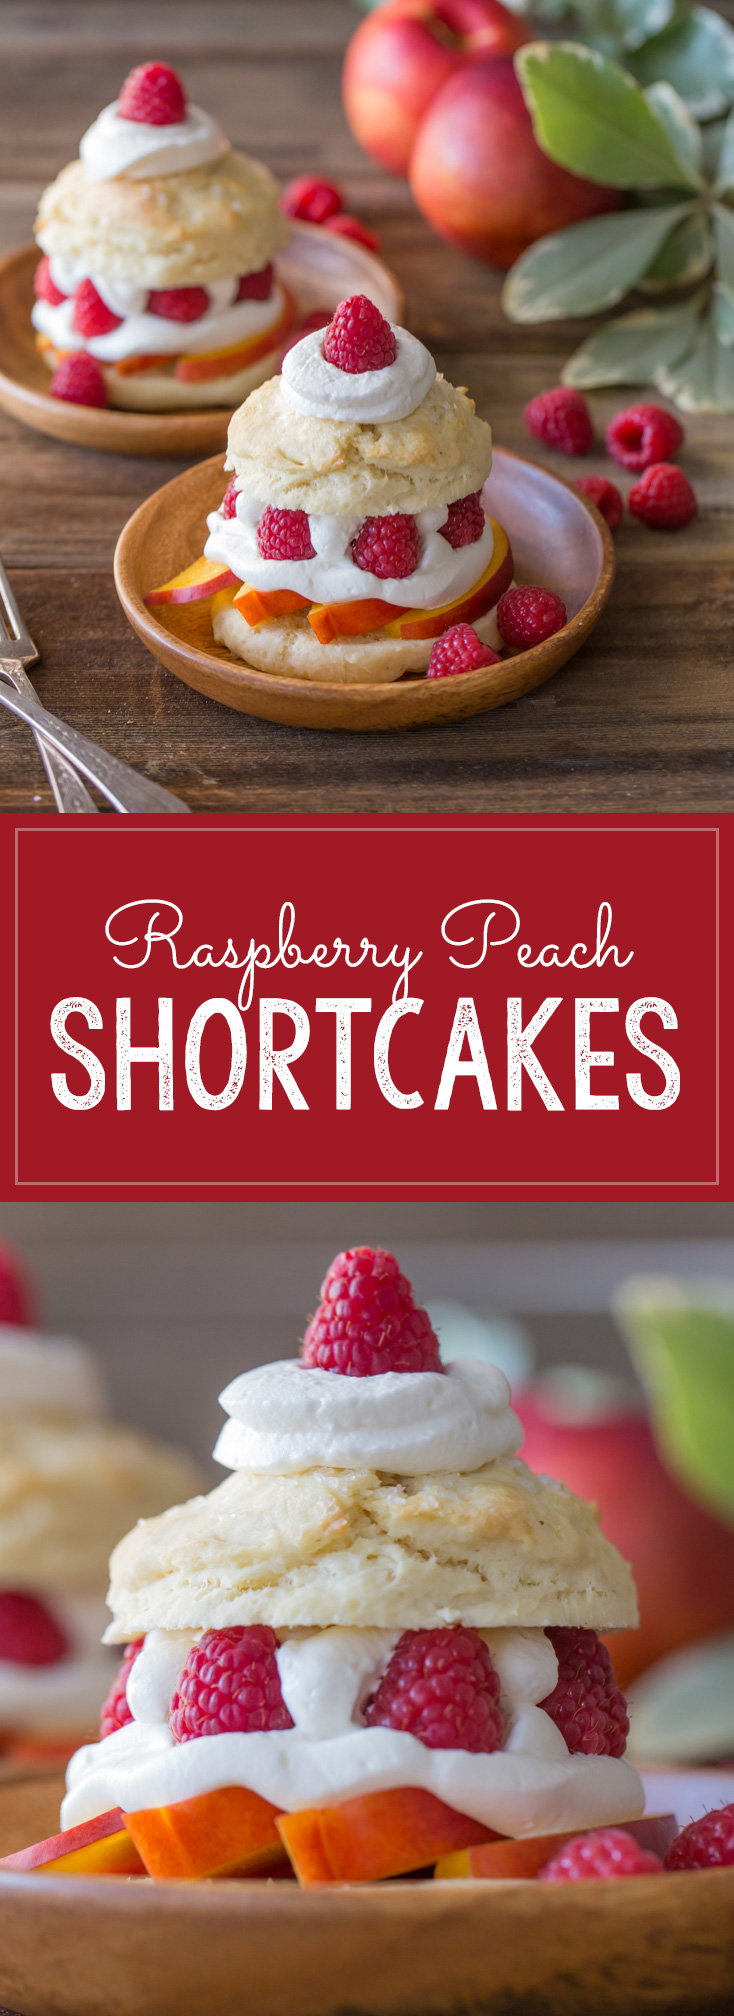 My favorite sweet, buttery, flakey biscuits filled with juicy, ripe peaches, fresh raspberries, and homemade whipped cream.